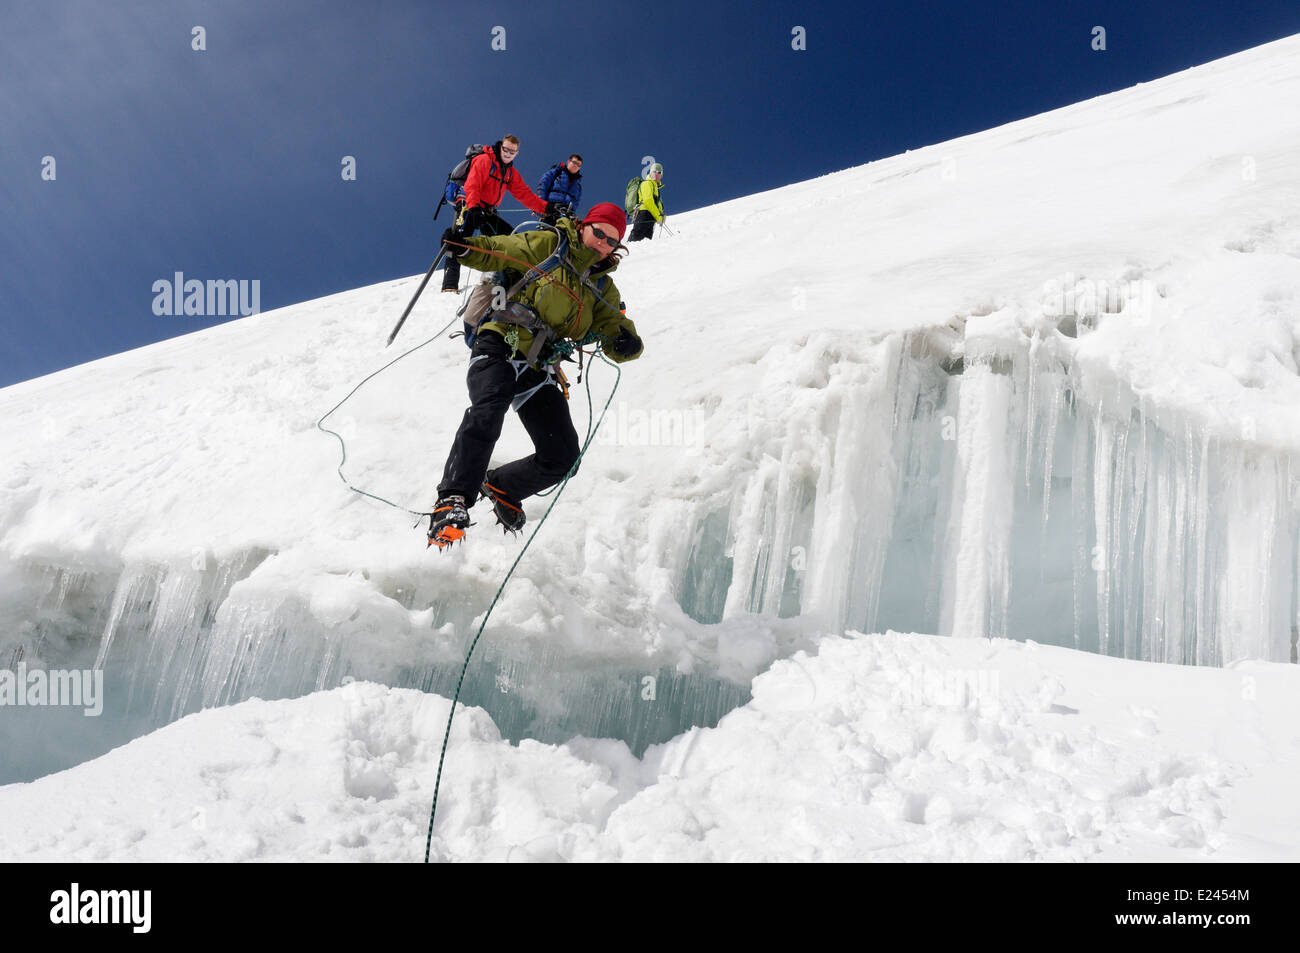 a-lady-climber-jumping-a-crevasse-in-the